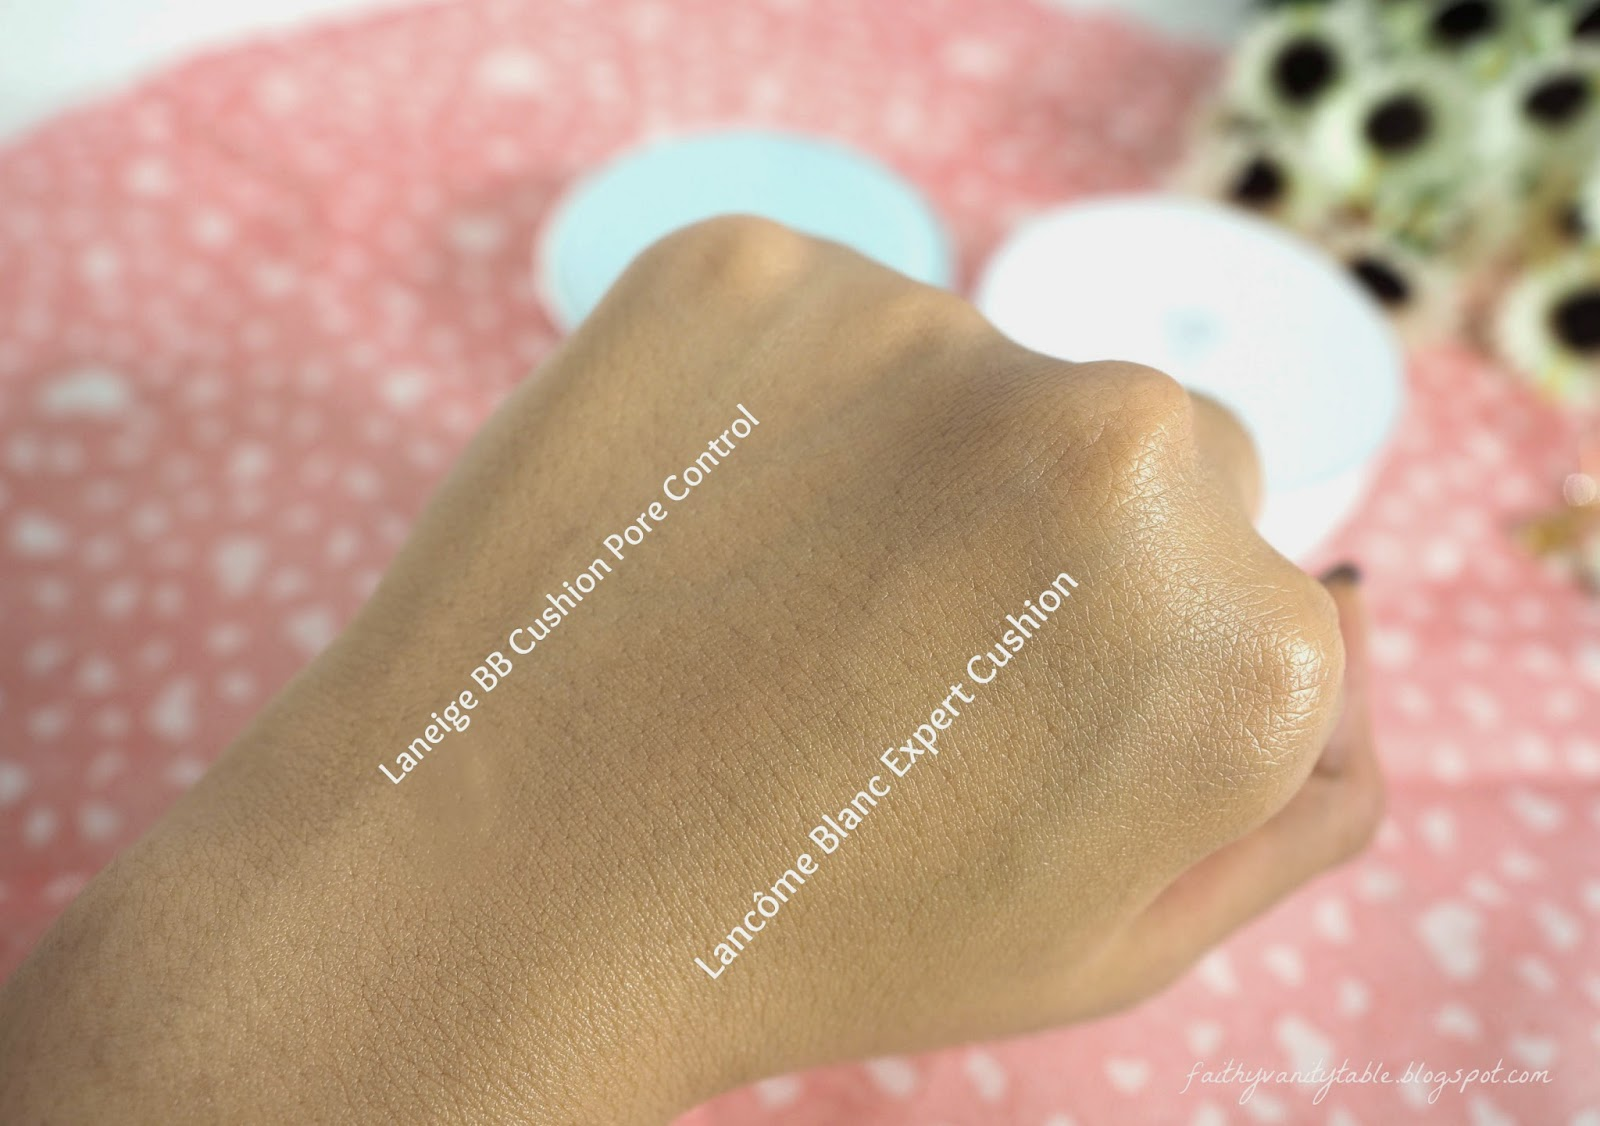 Review of Lancome Blanc Expert Cushion UV and Laneige BB cushion pore control